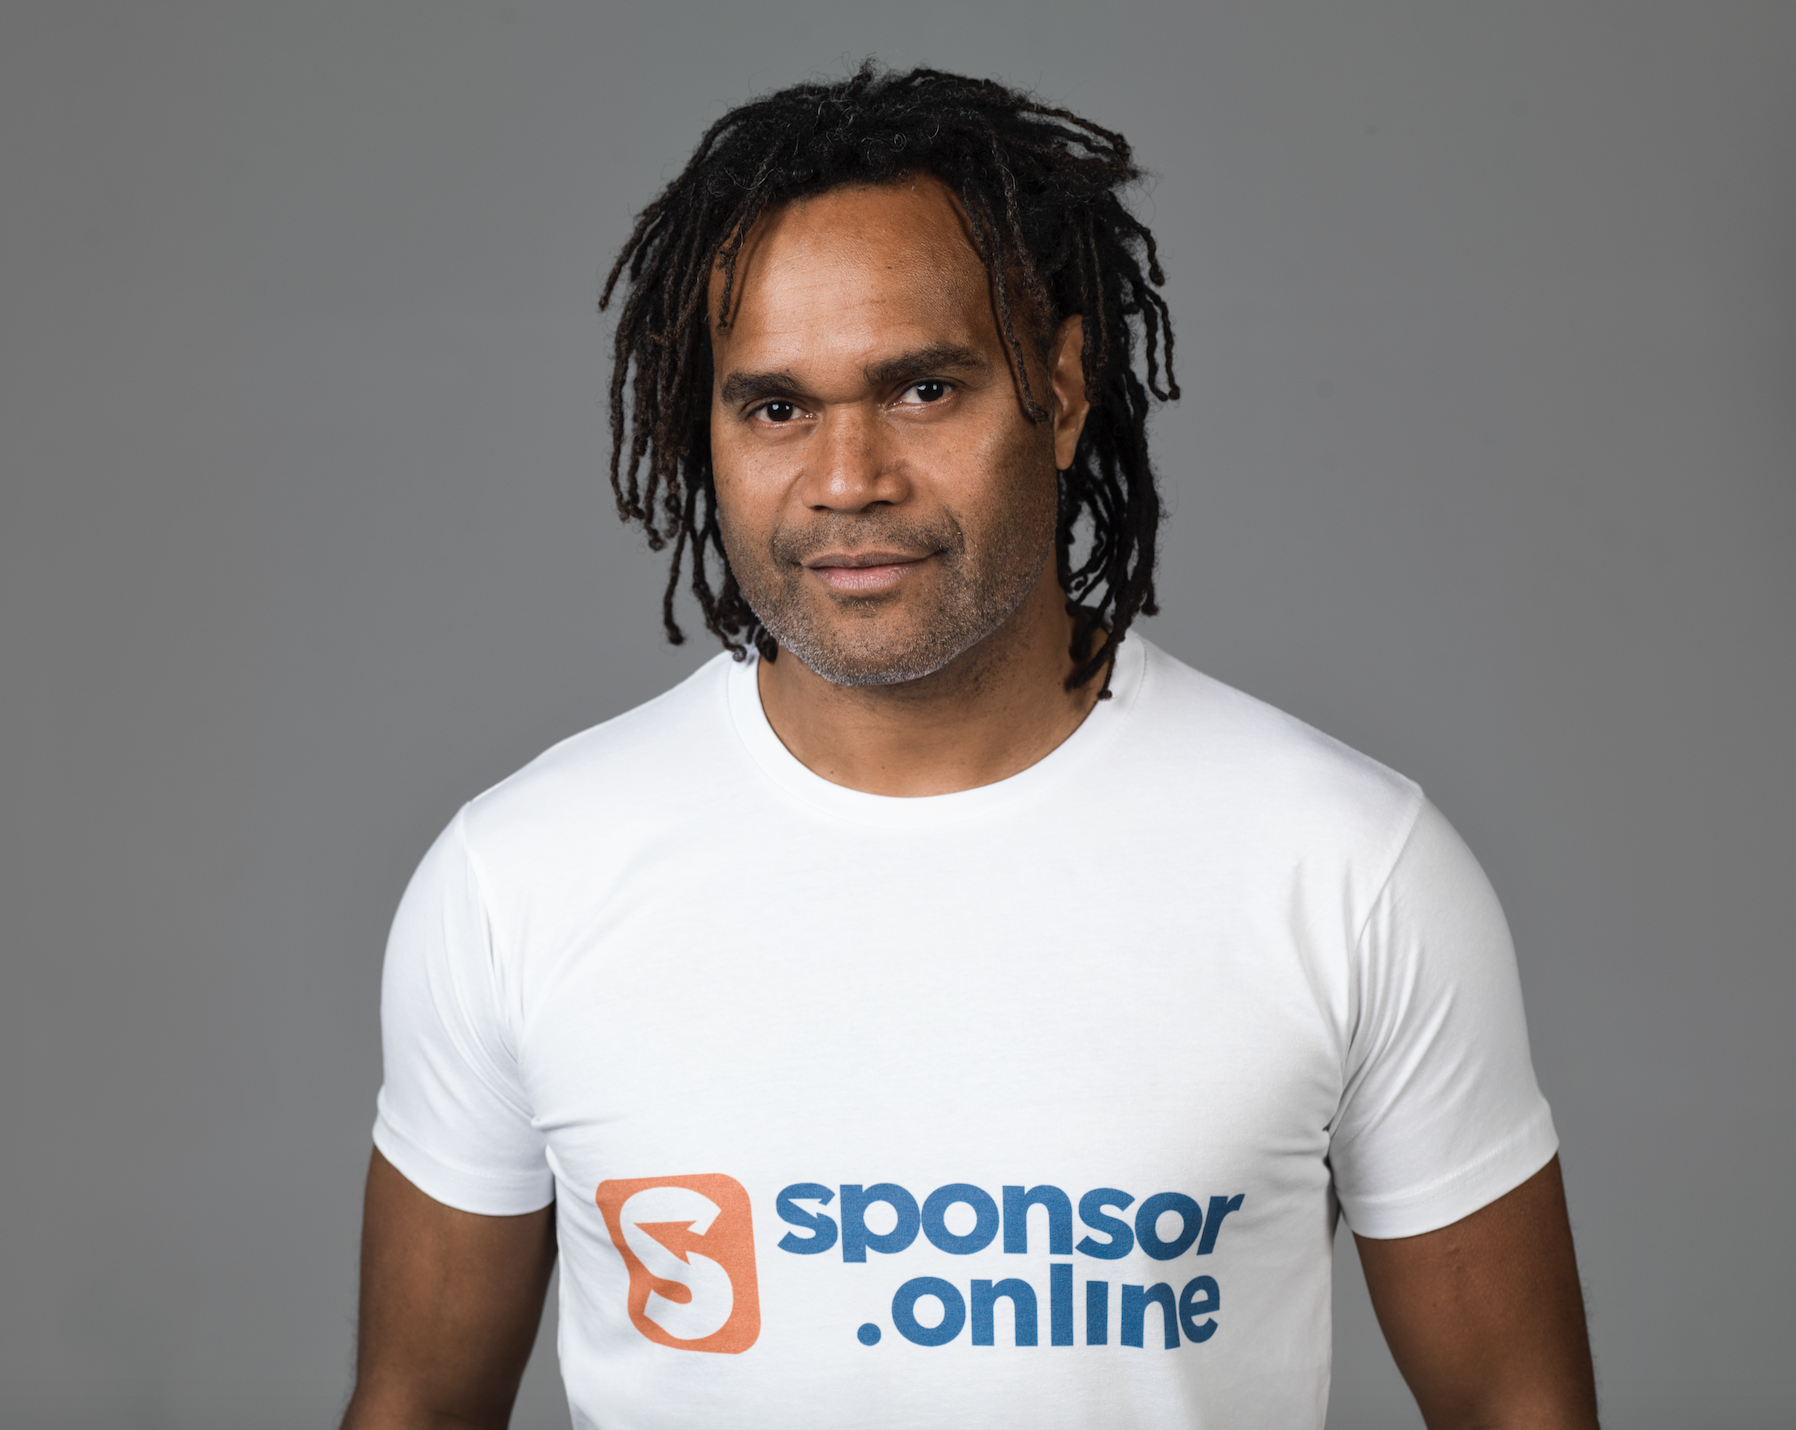 Retired French International Christian Karembeu aims to change the sports sponsorship industry